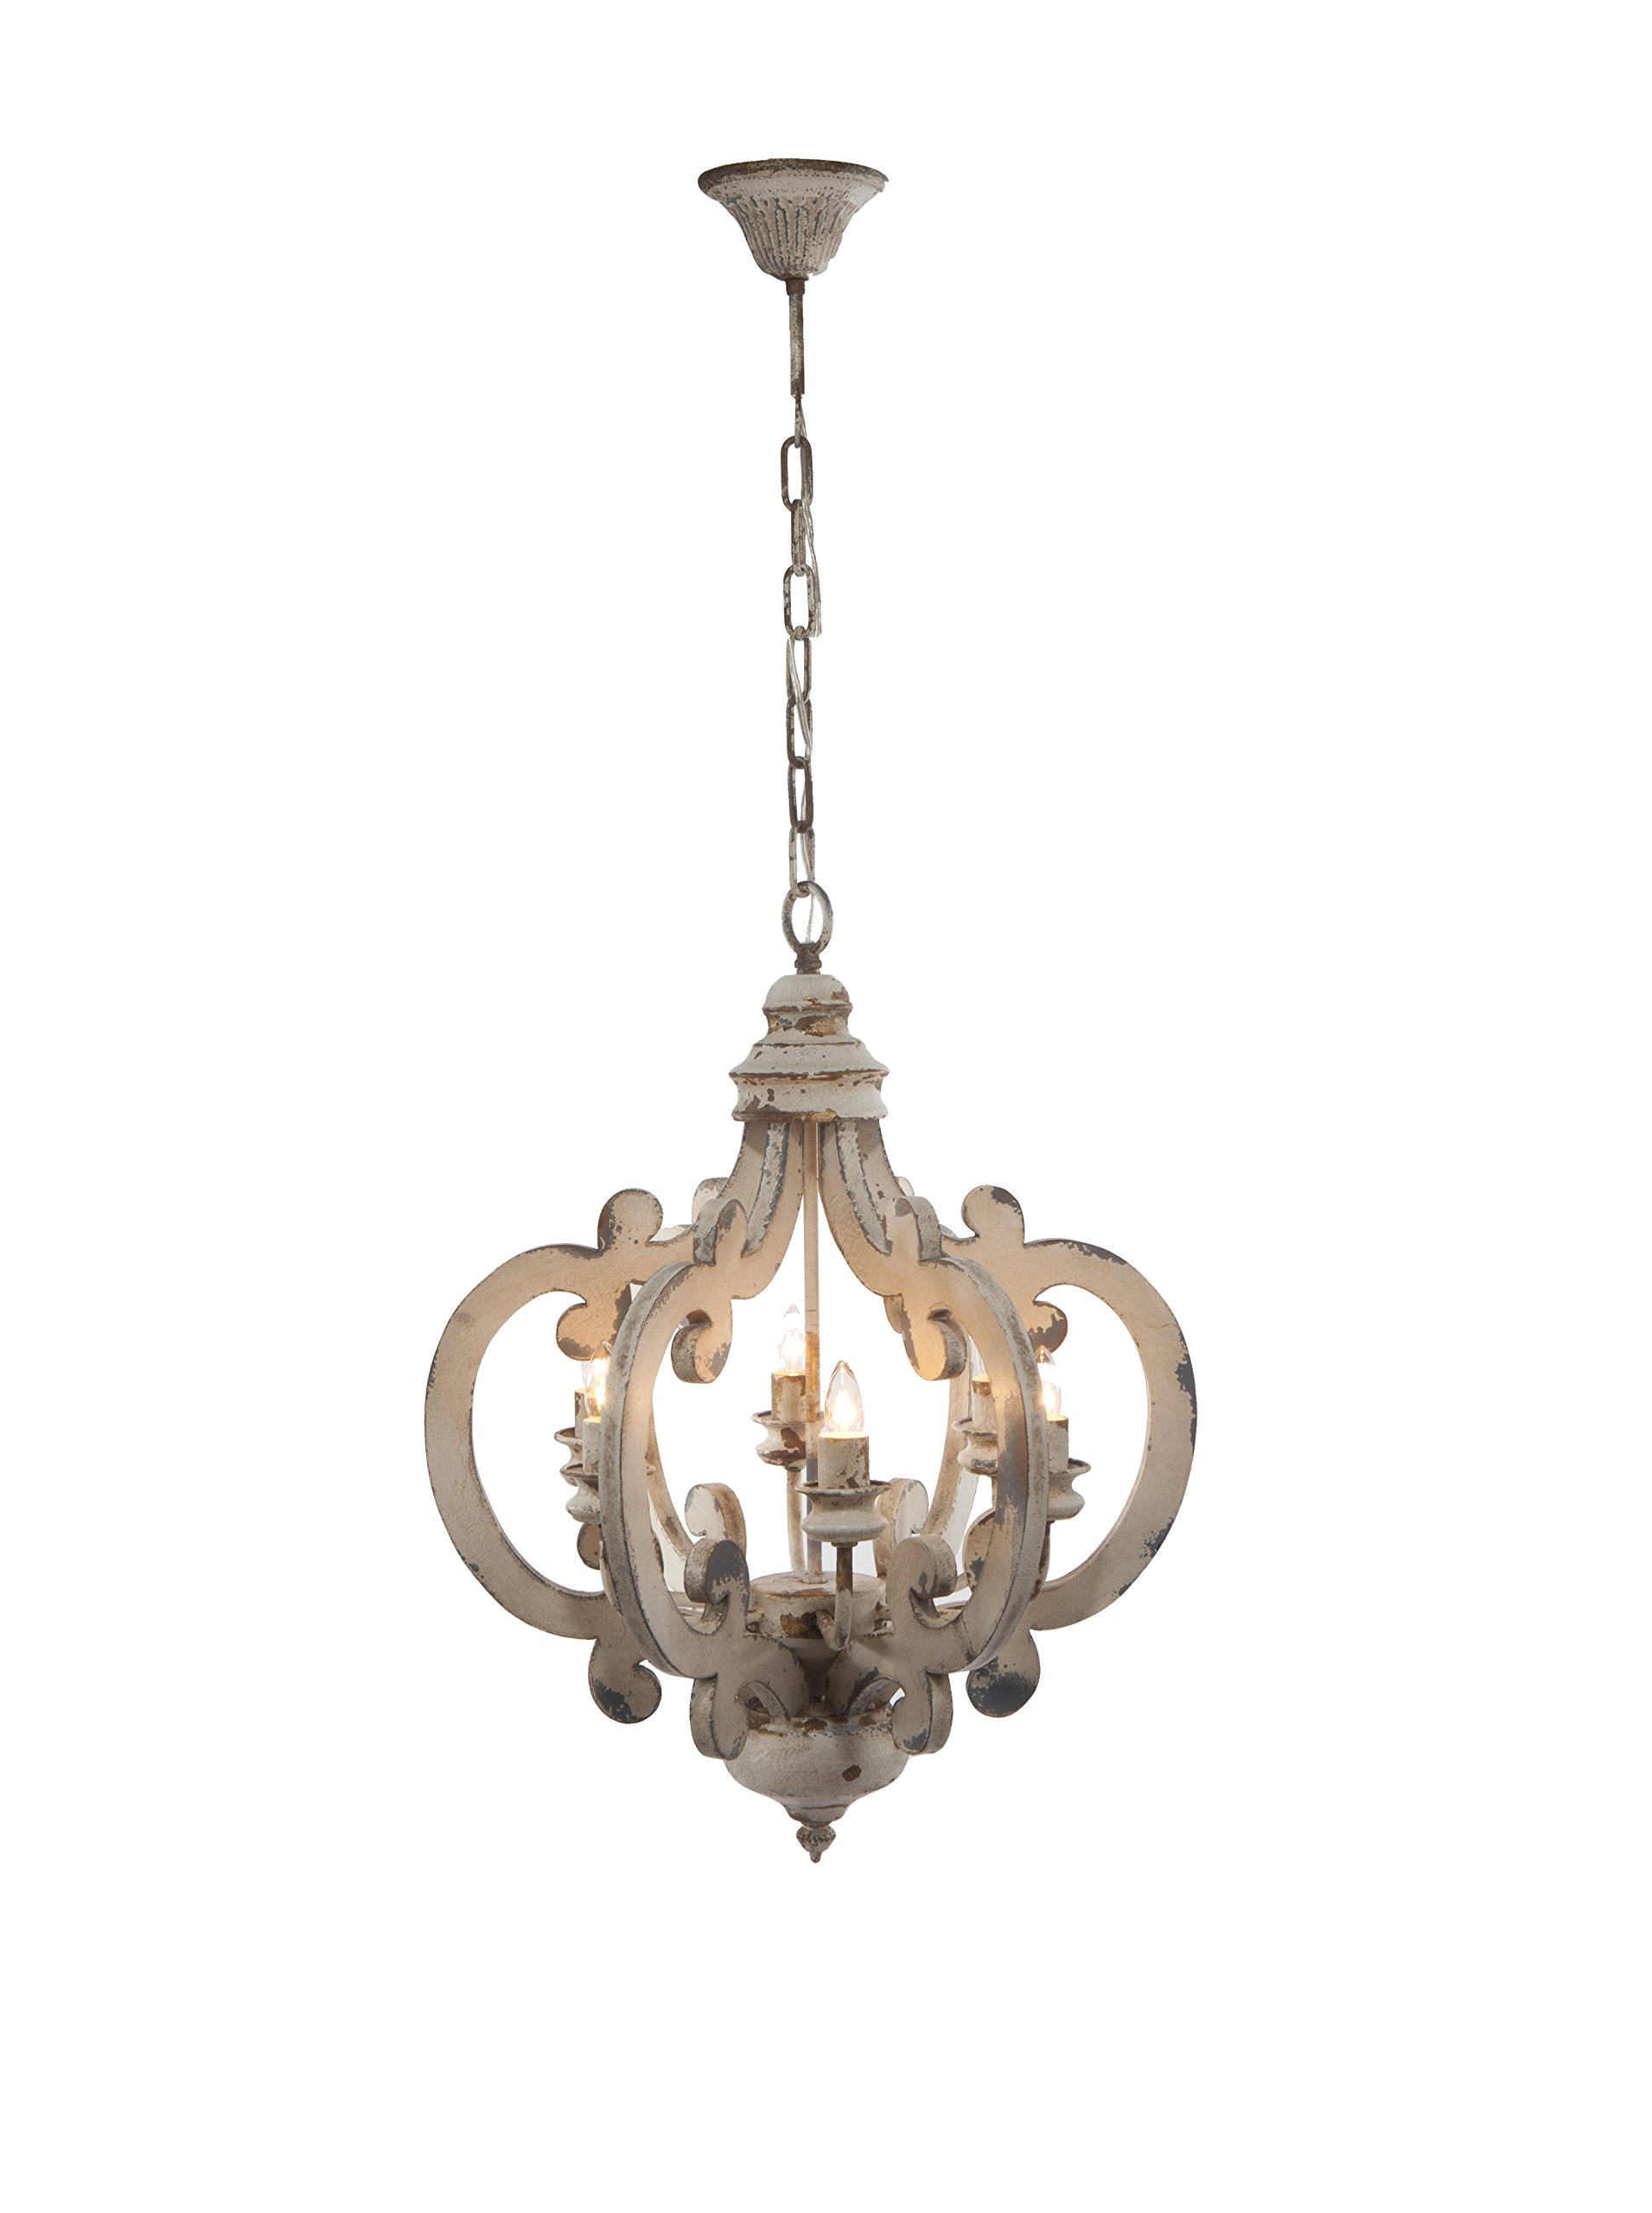 Wood-metal Chandelier 19.25'' X 25'' Beautiful Antique Chandelier Vintage Chandelier Hanging Chandelier by David Tutera